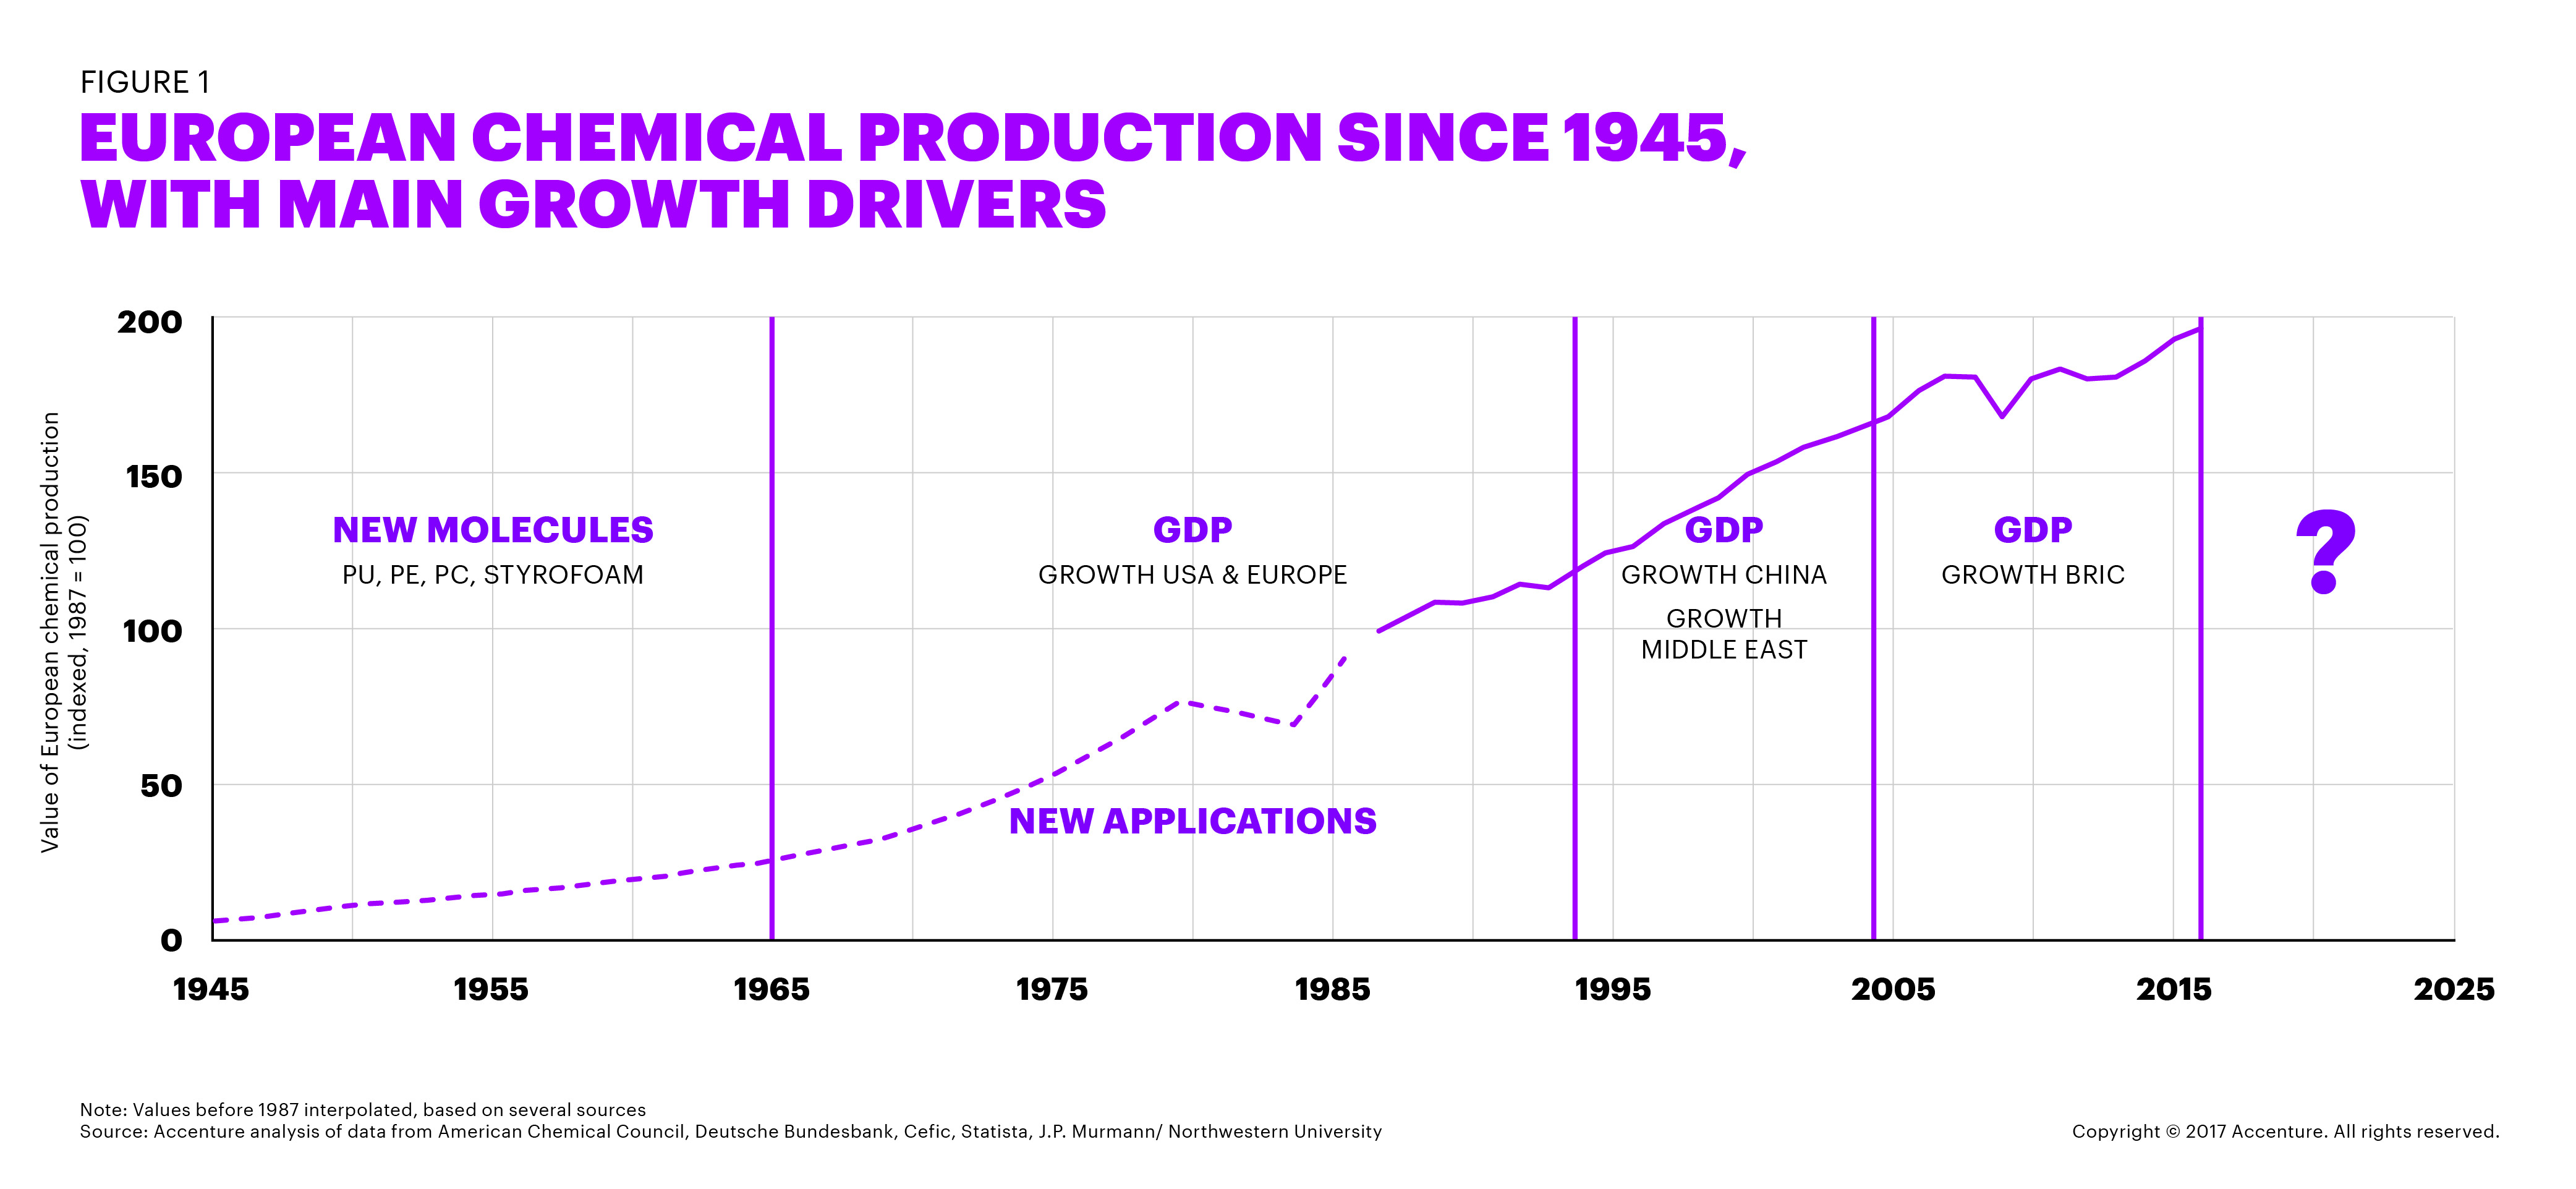 EUROPEAN CHEMICAL PRODUCTION SINCE 1945, WITH MAIN GROWTH DRIVERS